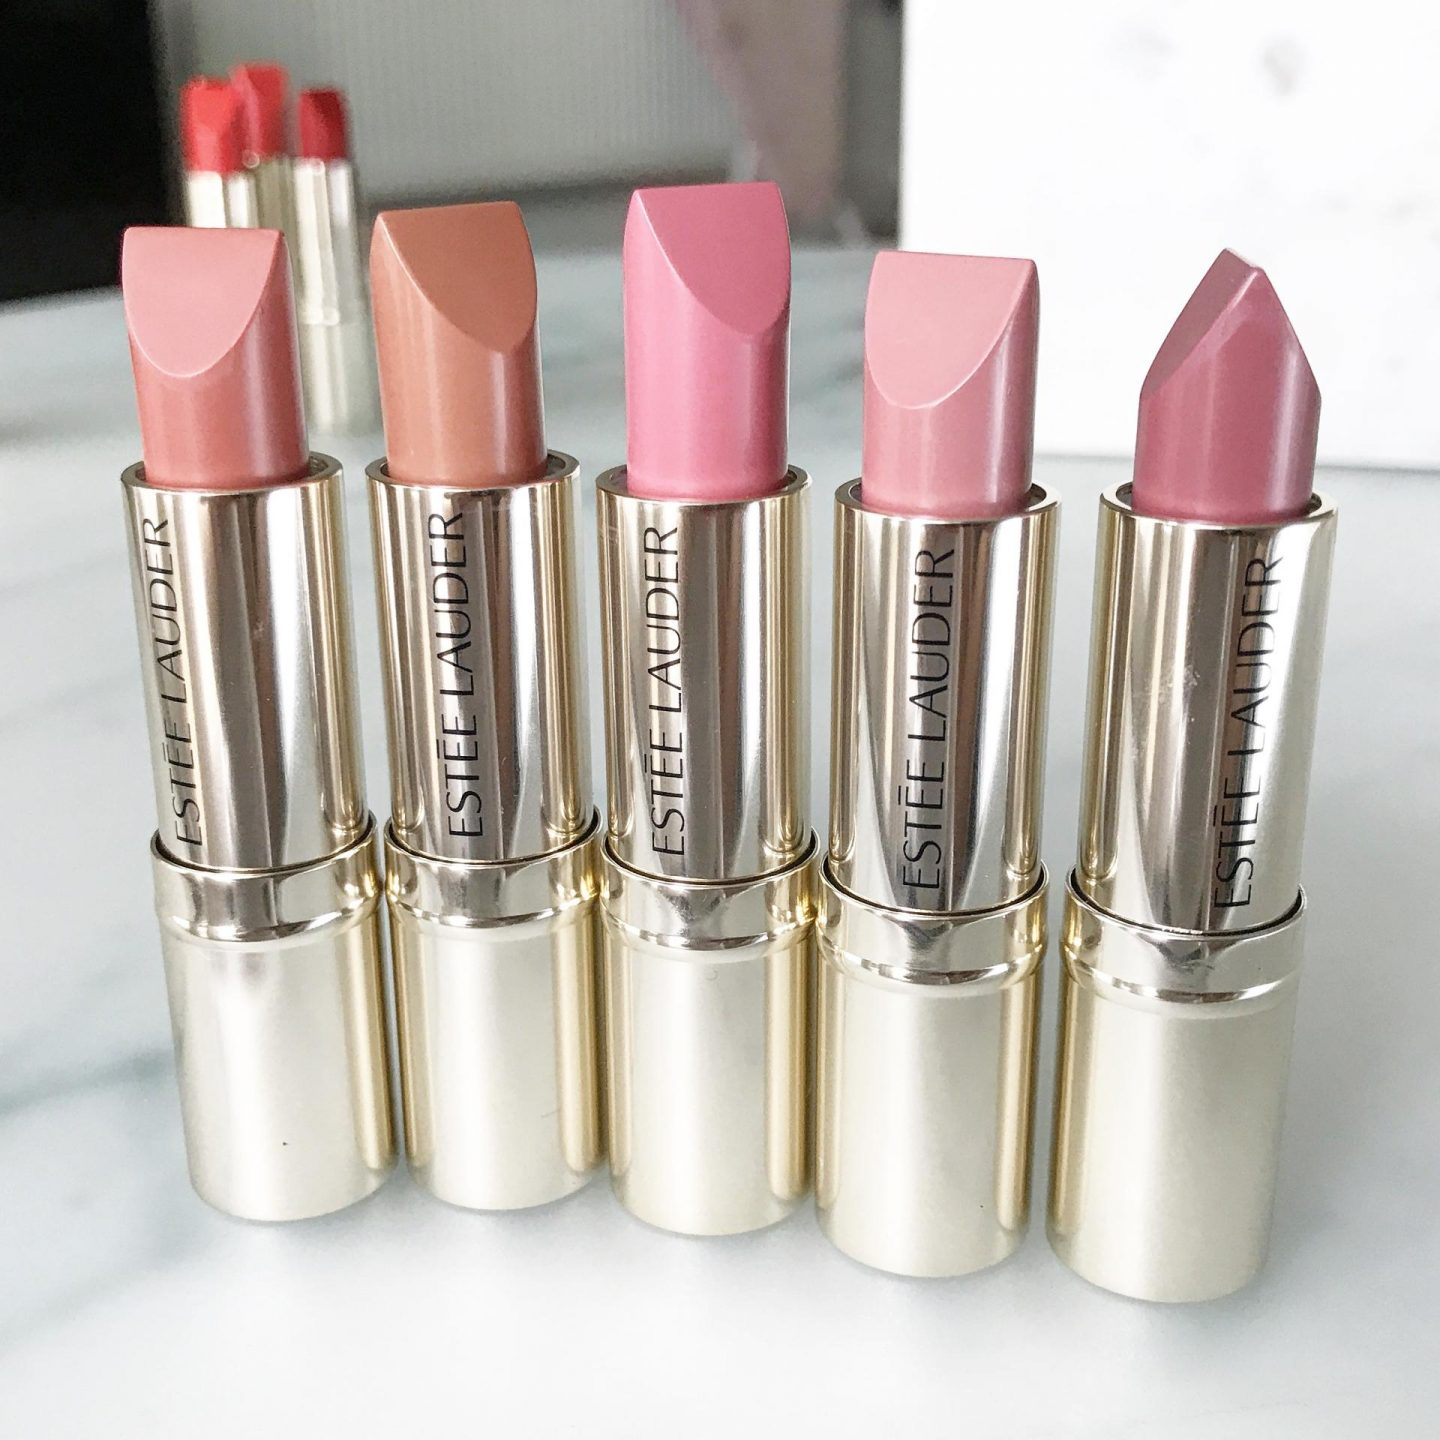 Estee Lauder Pure Colour Love Lipstick - The Nudes